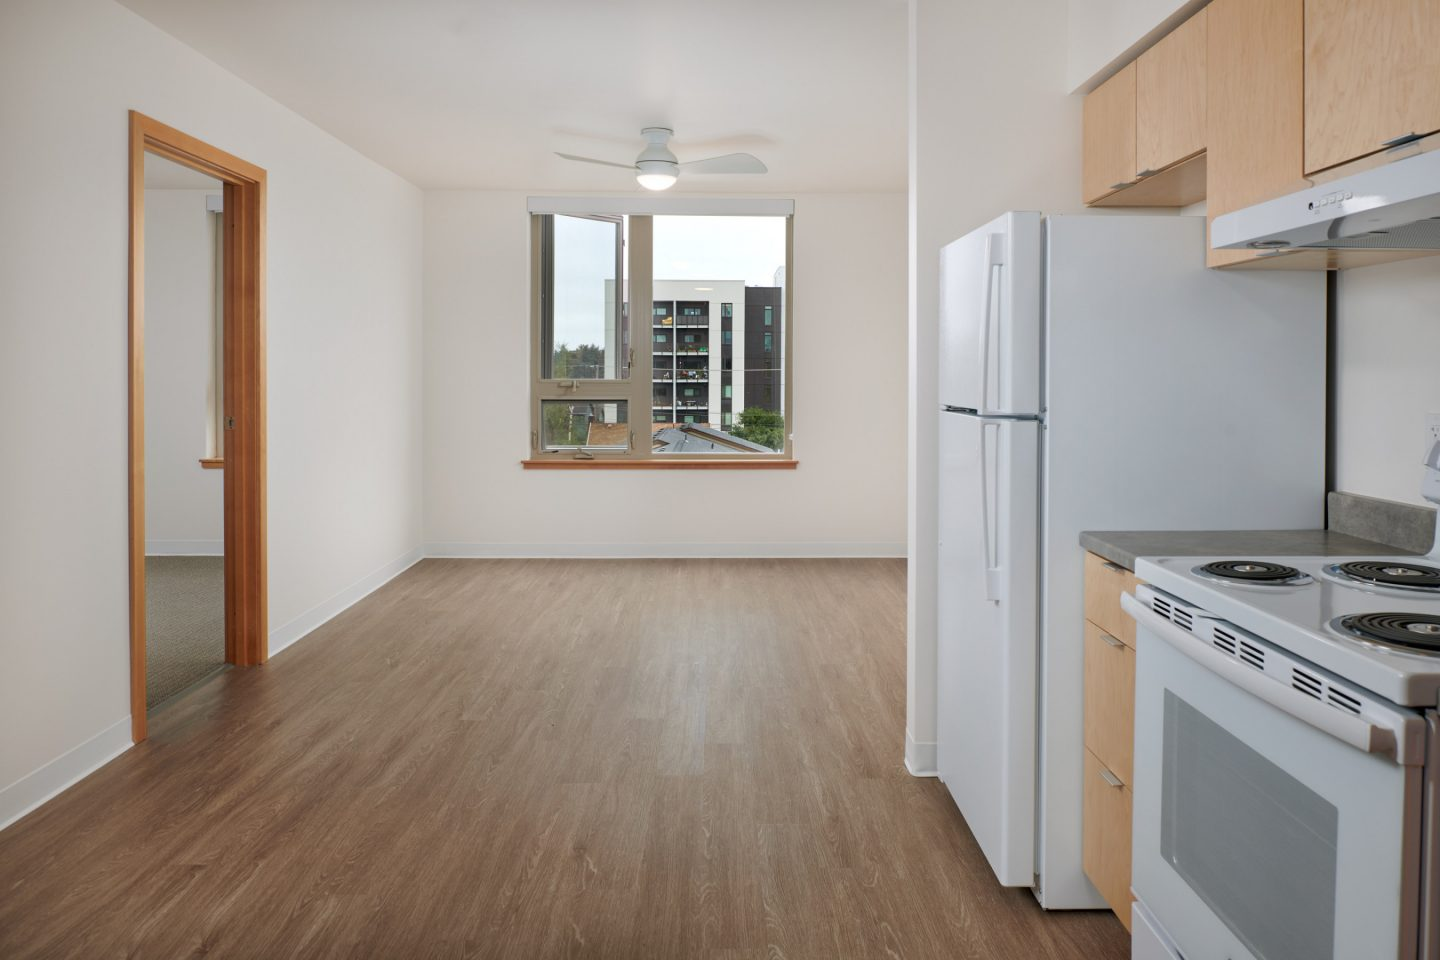 Kitchen And Living Room In Apartment